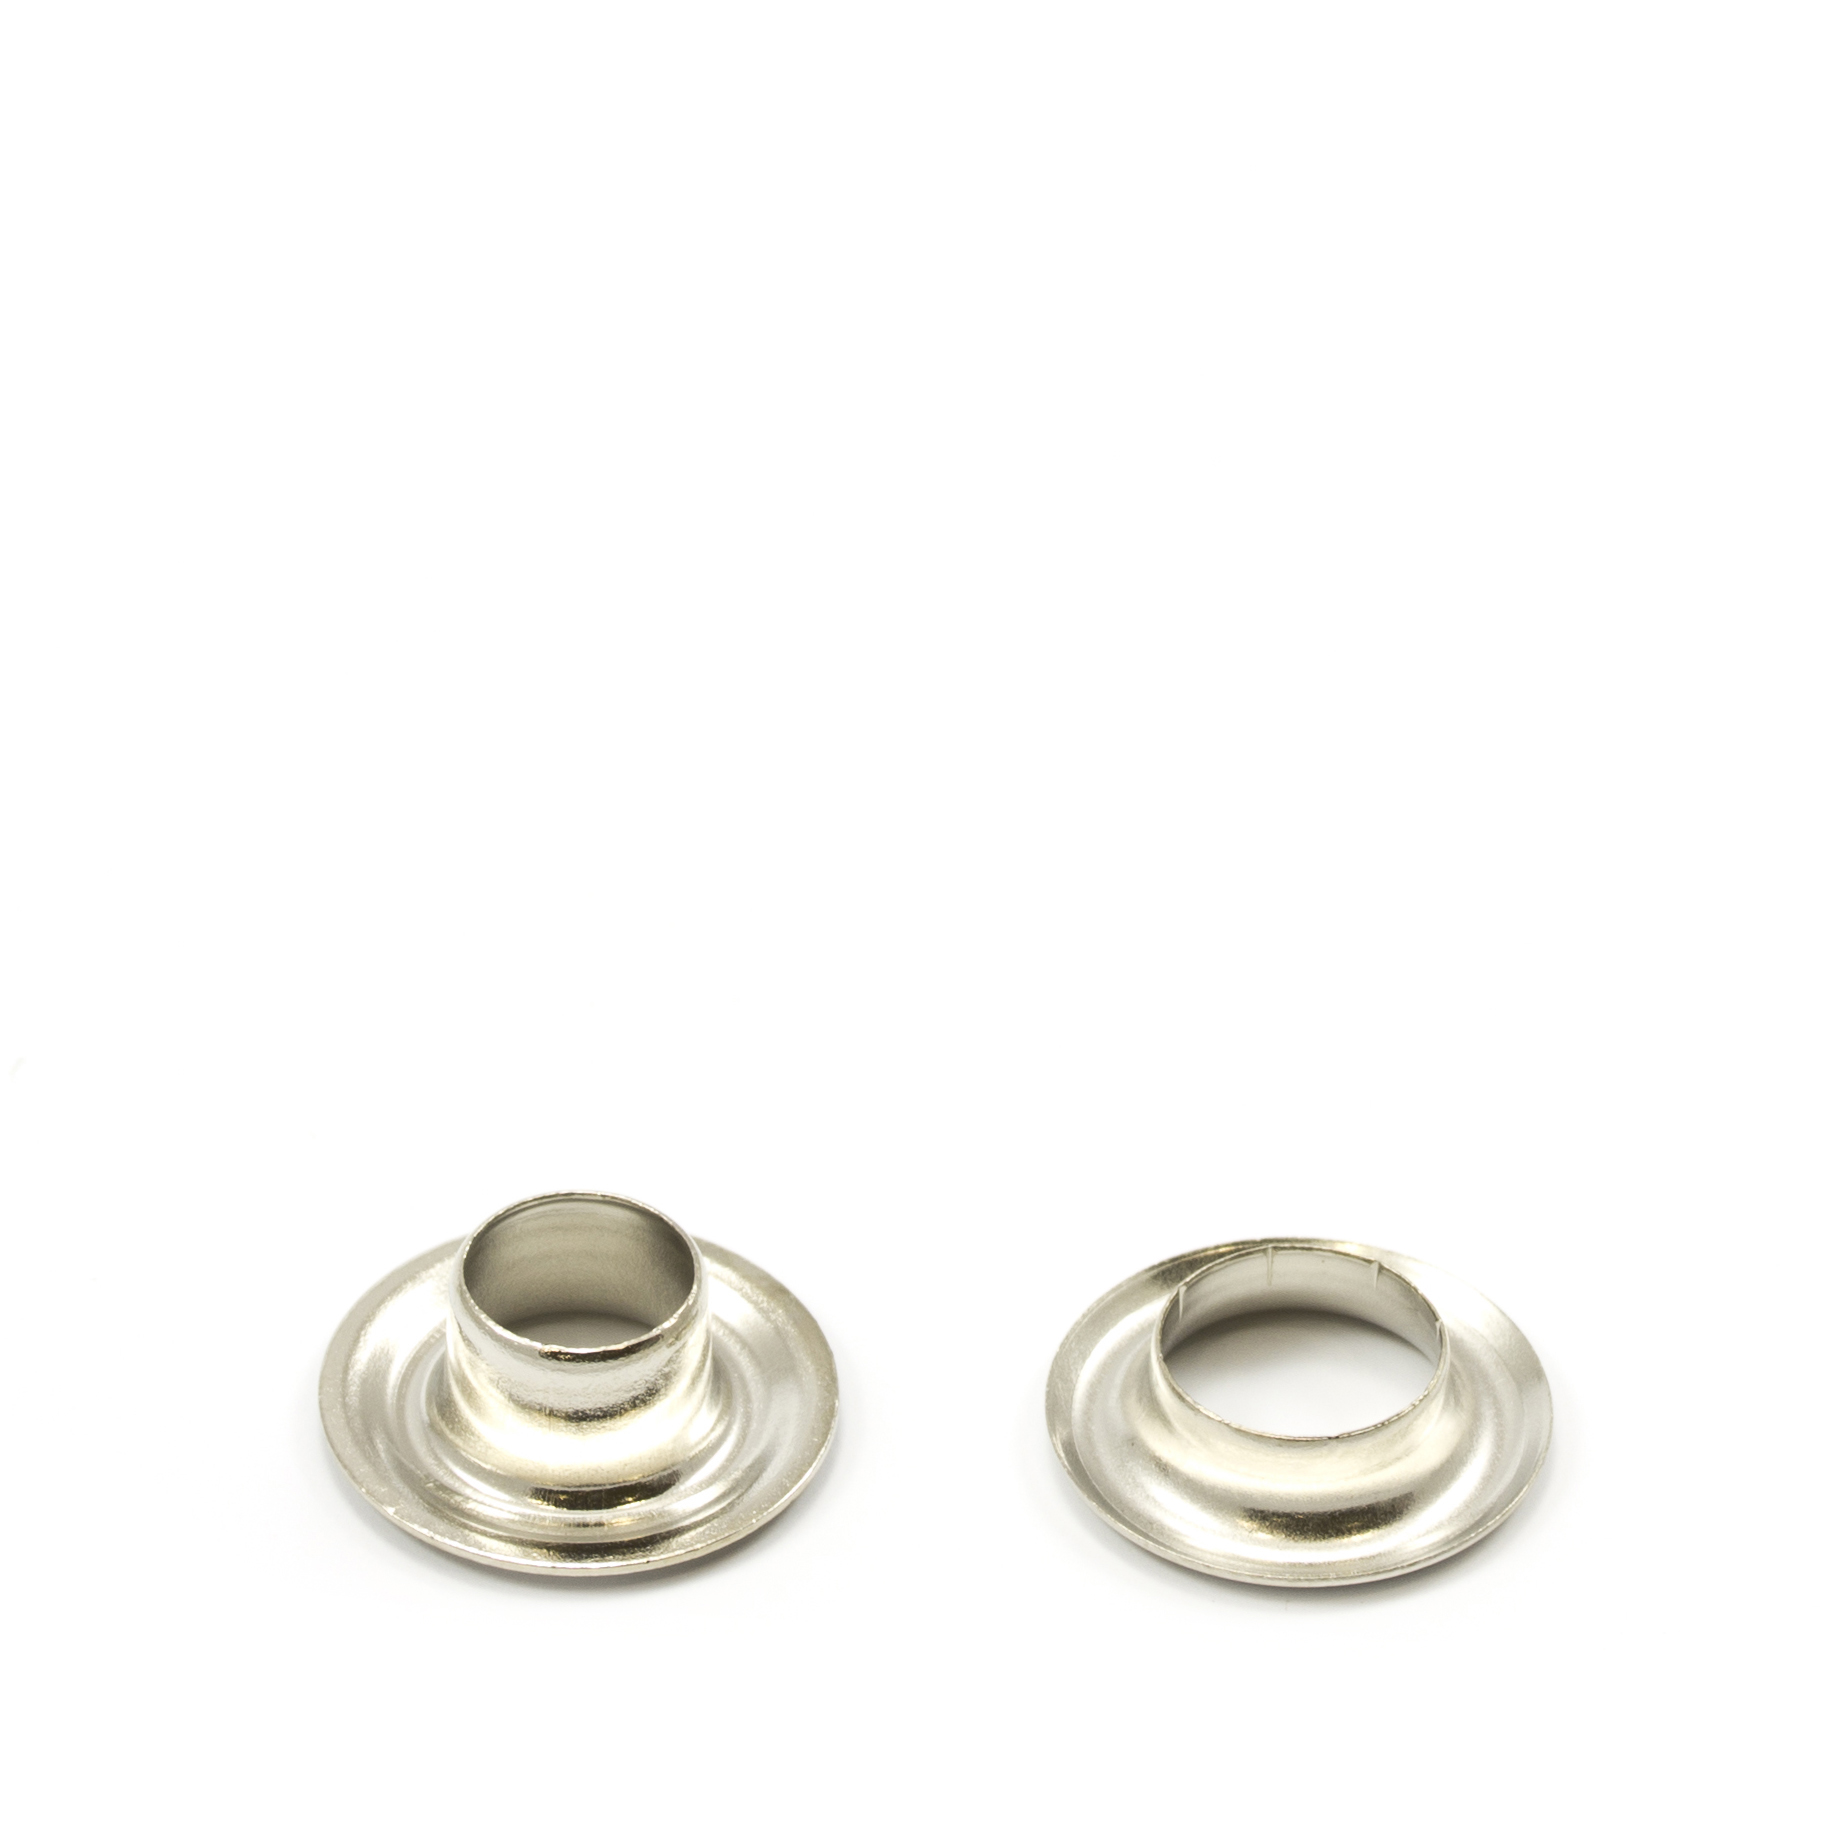 Grommet with A-1197 Washer #0 Brass Nickel Plated 25-gr ED ALT